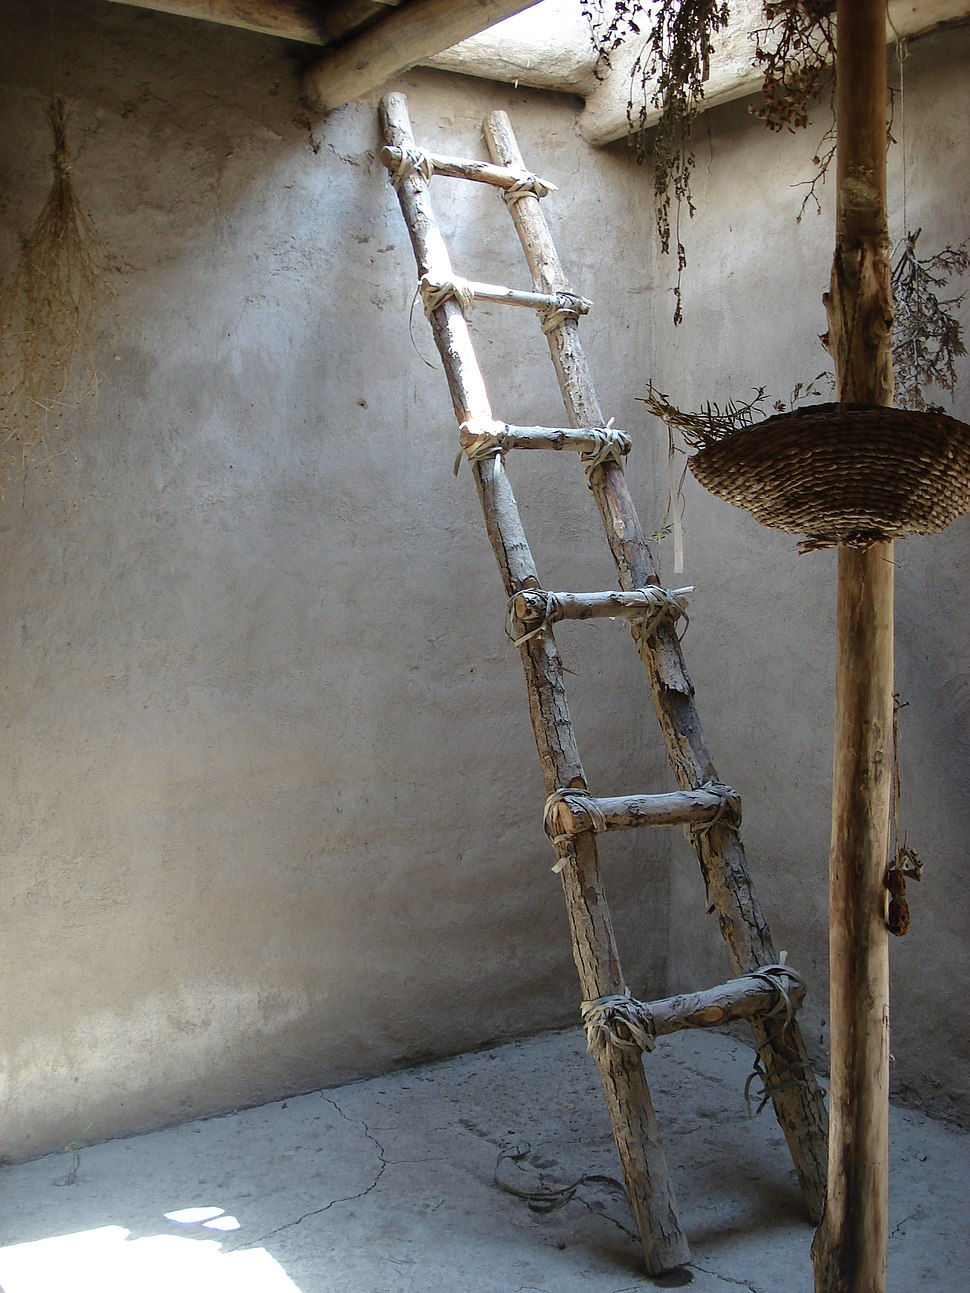 Reconstructed ladder Asikli Hoyuk